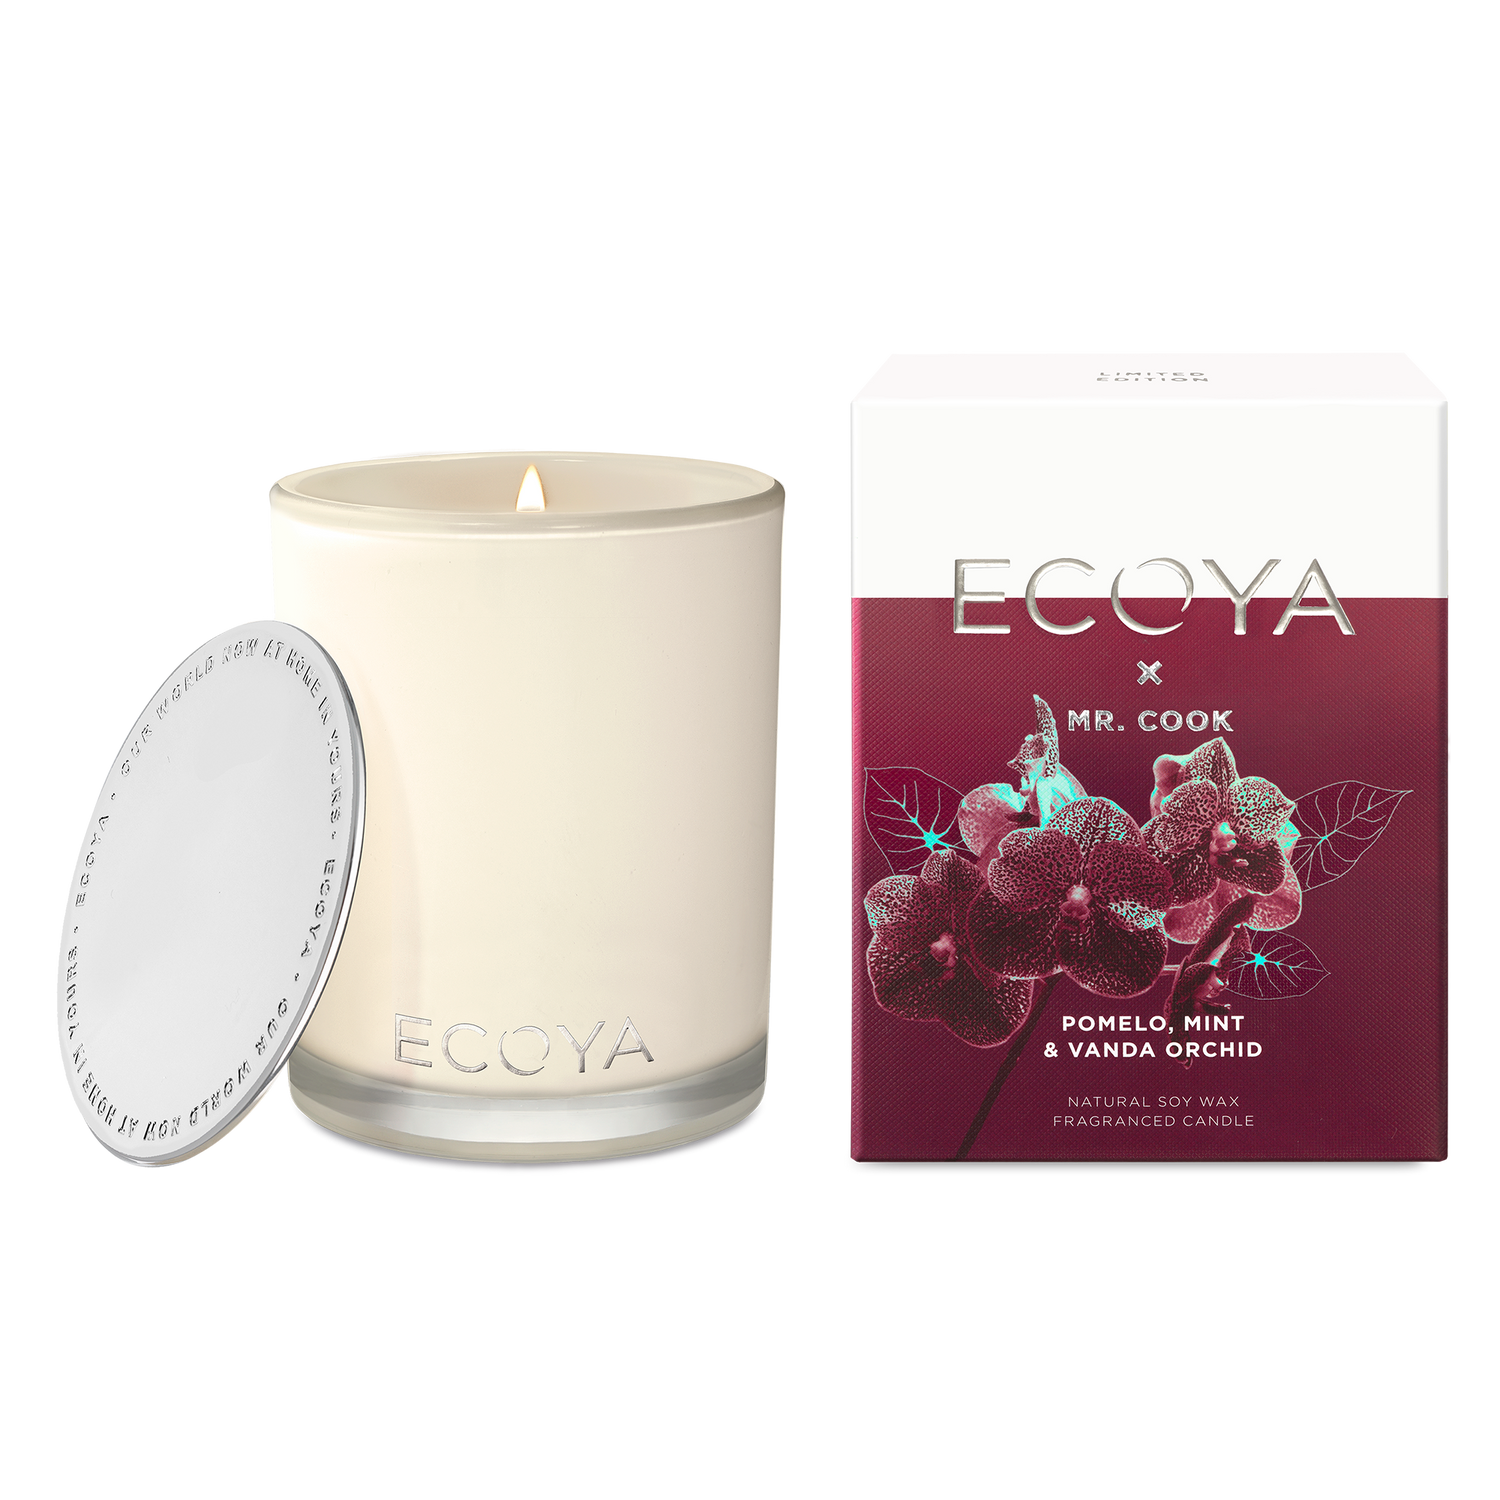 ECOYA X MR COOK | Pomelo, Mint & Vanda Orchid Madison Jar